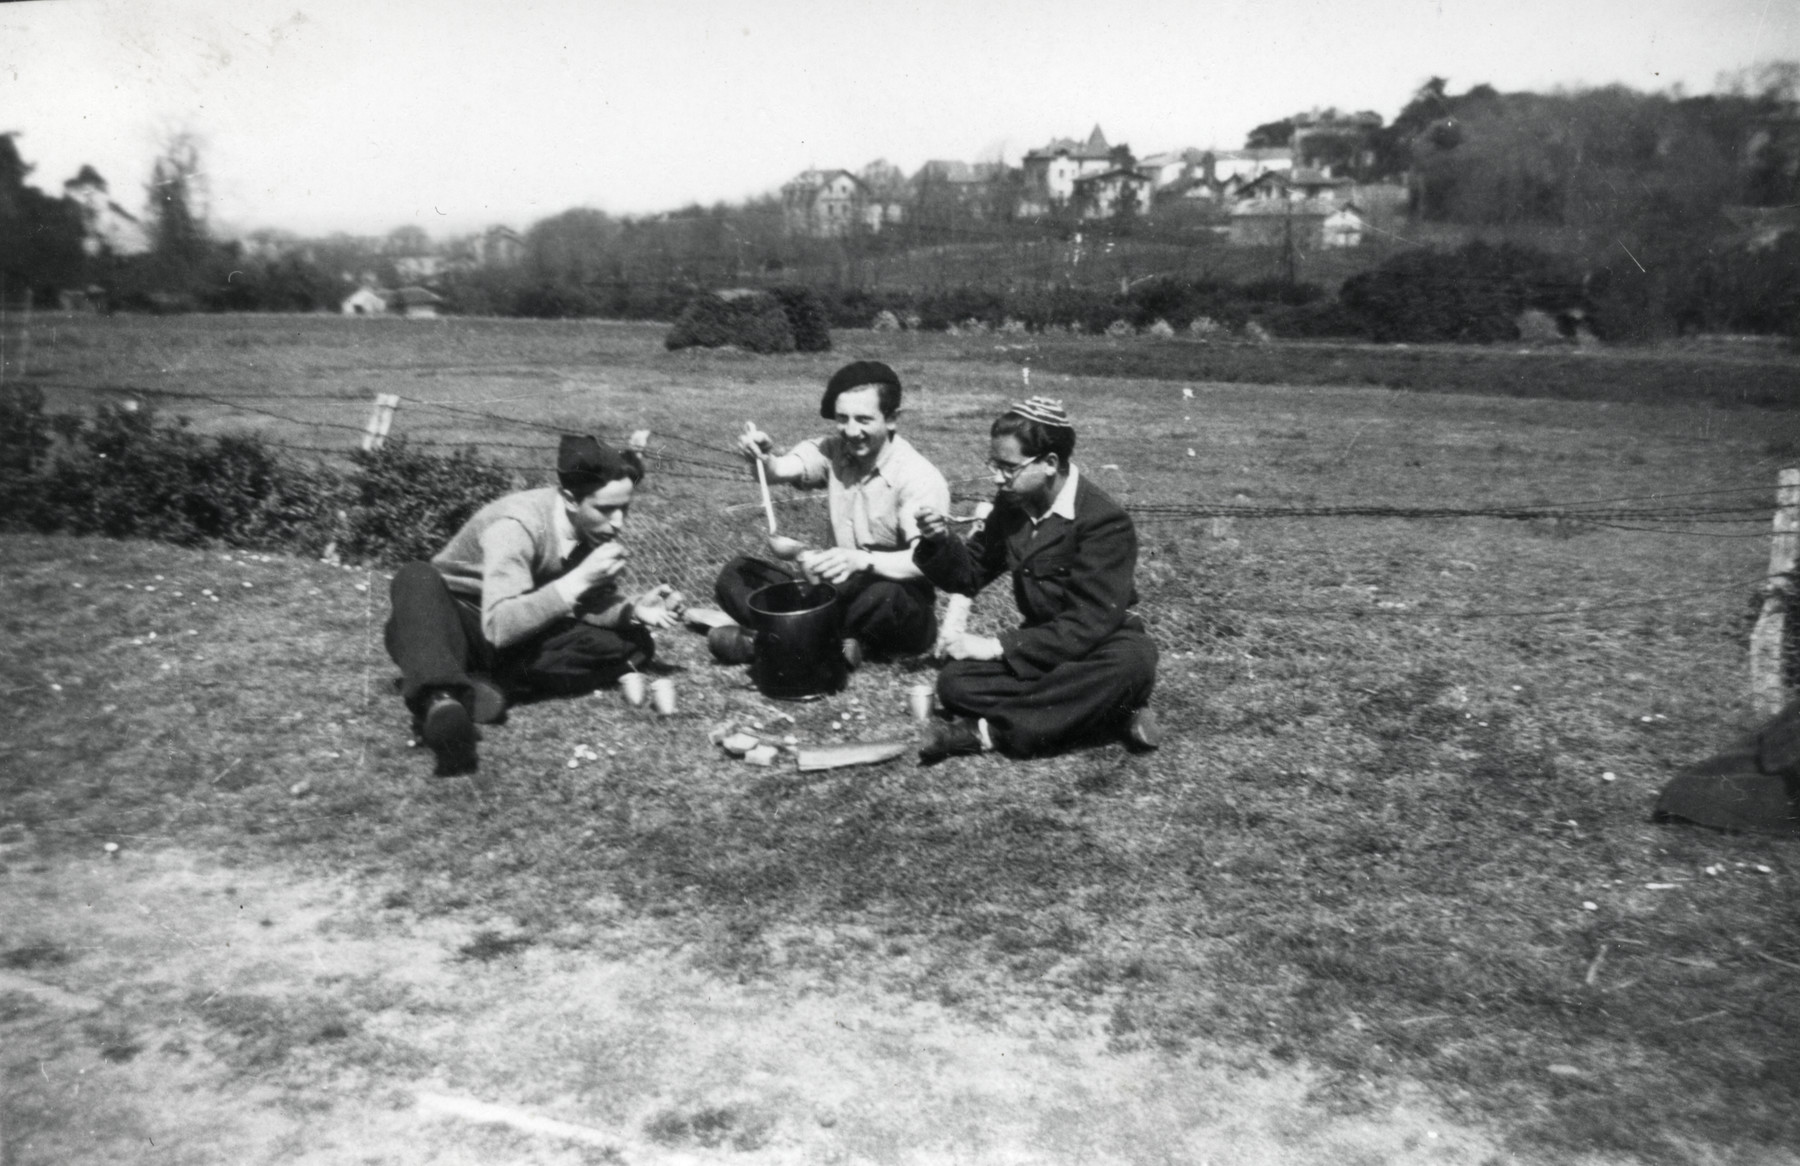 Three teenage boys eat outside during the Passover holiday.  Binem Wrzonski is pictured in the center.